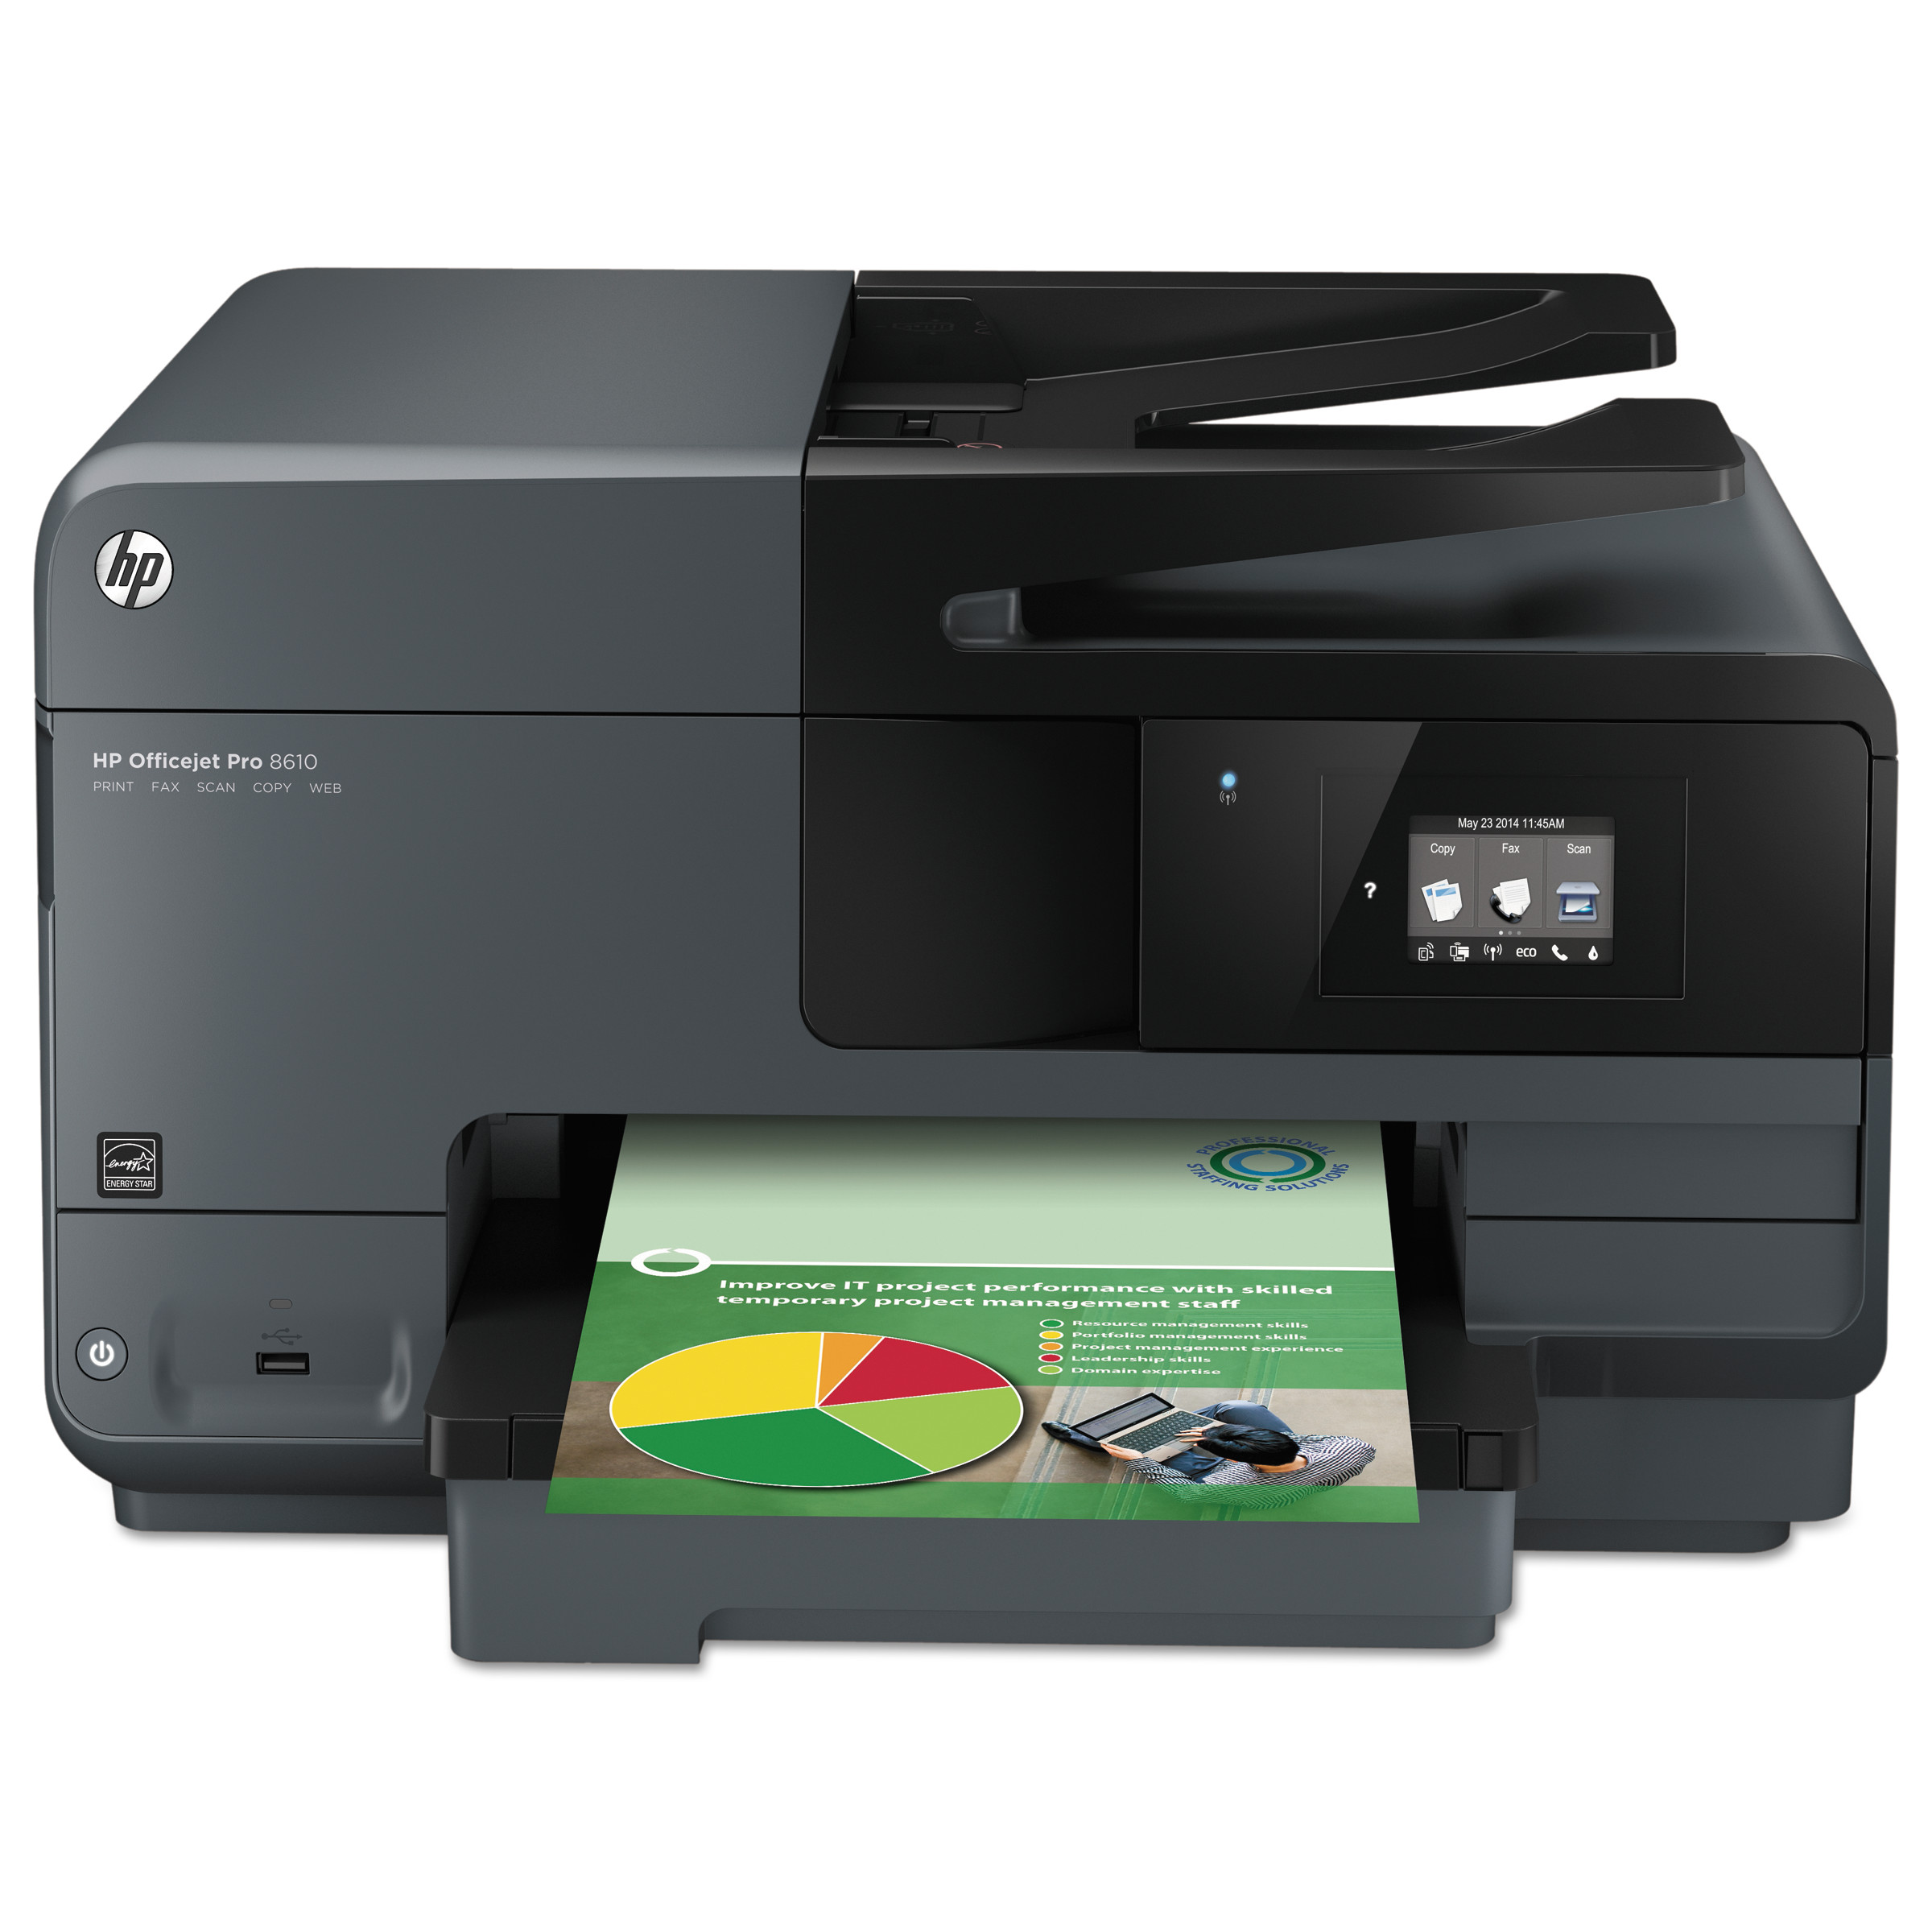 HP Officejet Pro 8610 e-All-in-One Wireless Inkjet Printer, Copy Fax Print Scan by HP